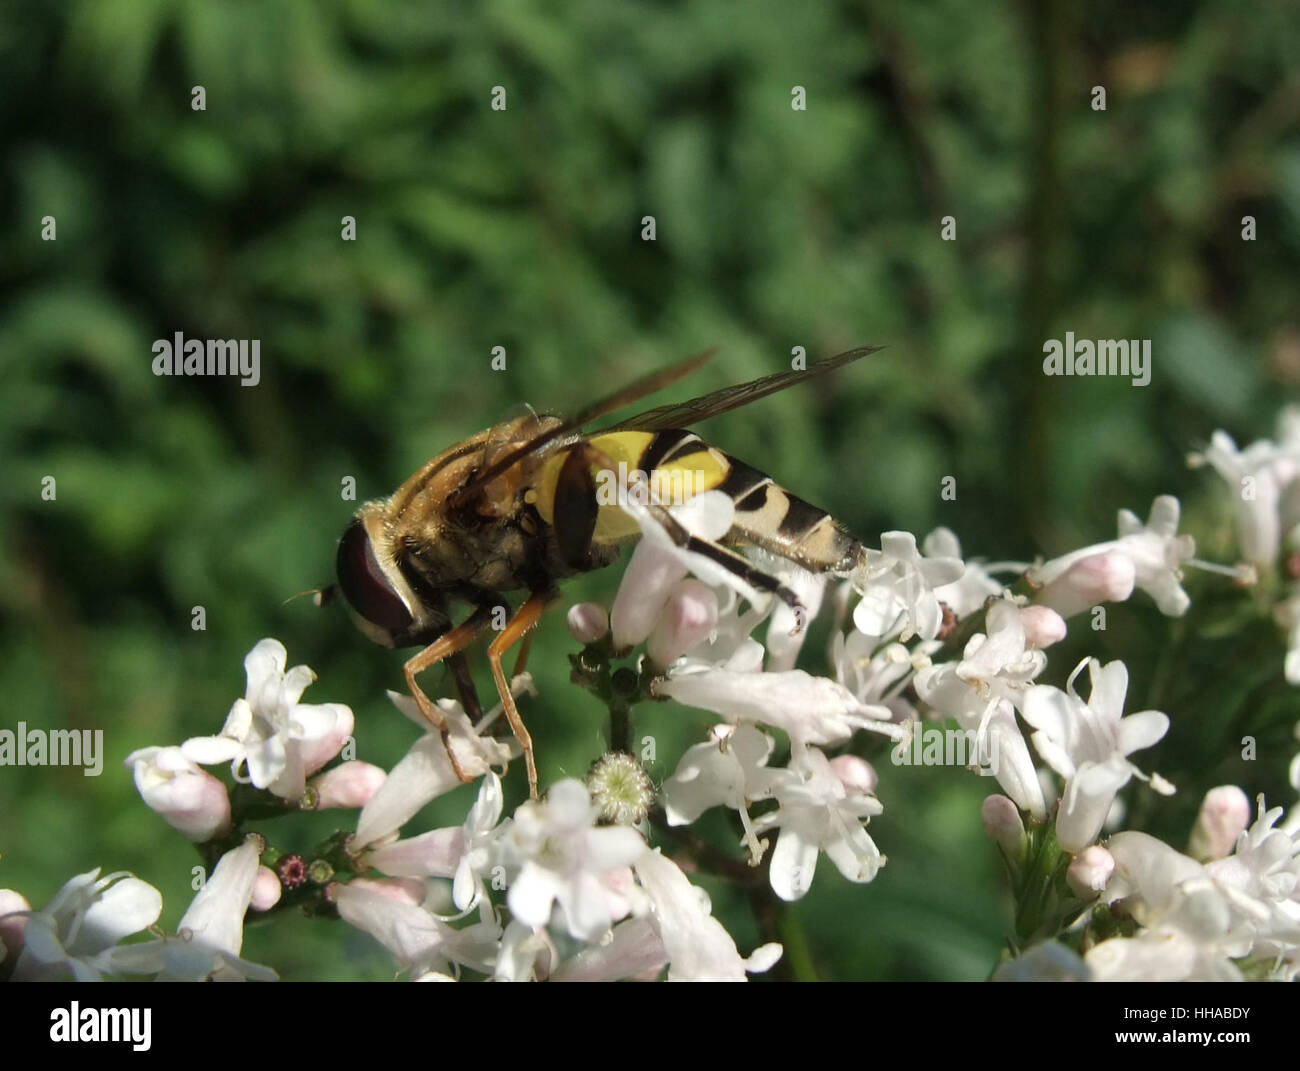 sideways shot showing a hover fly sitting on some flowers - Stock Image